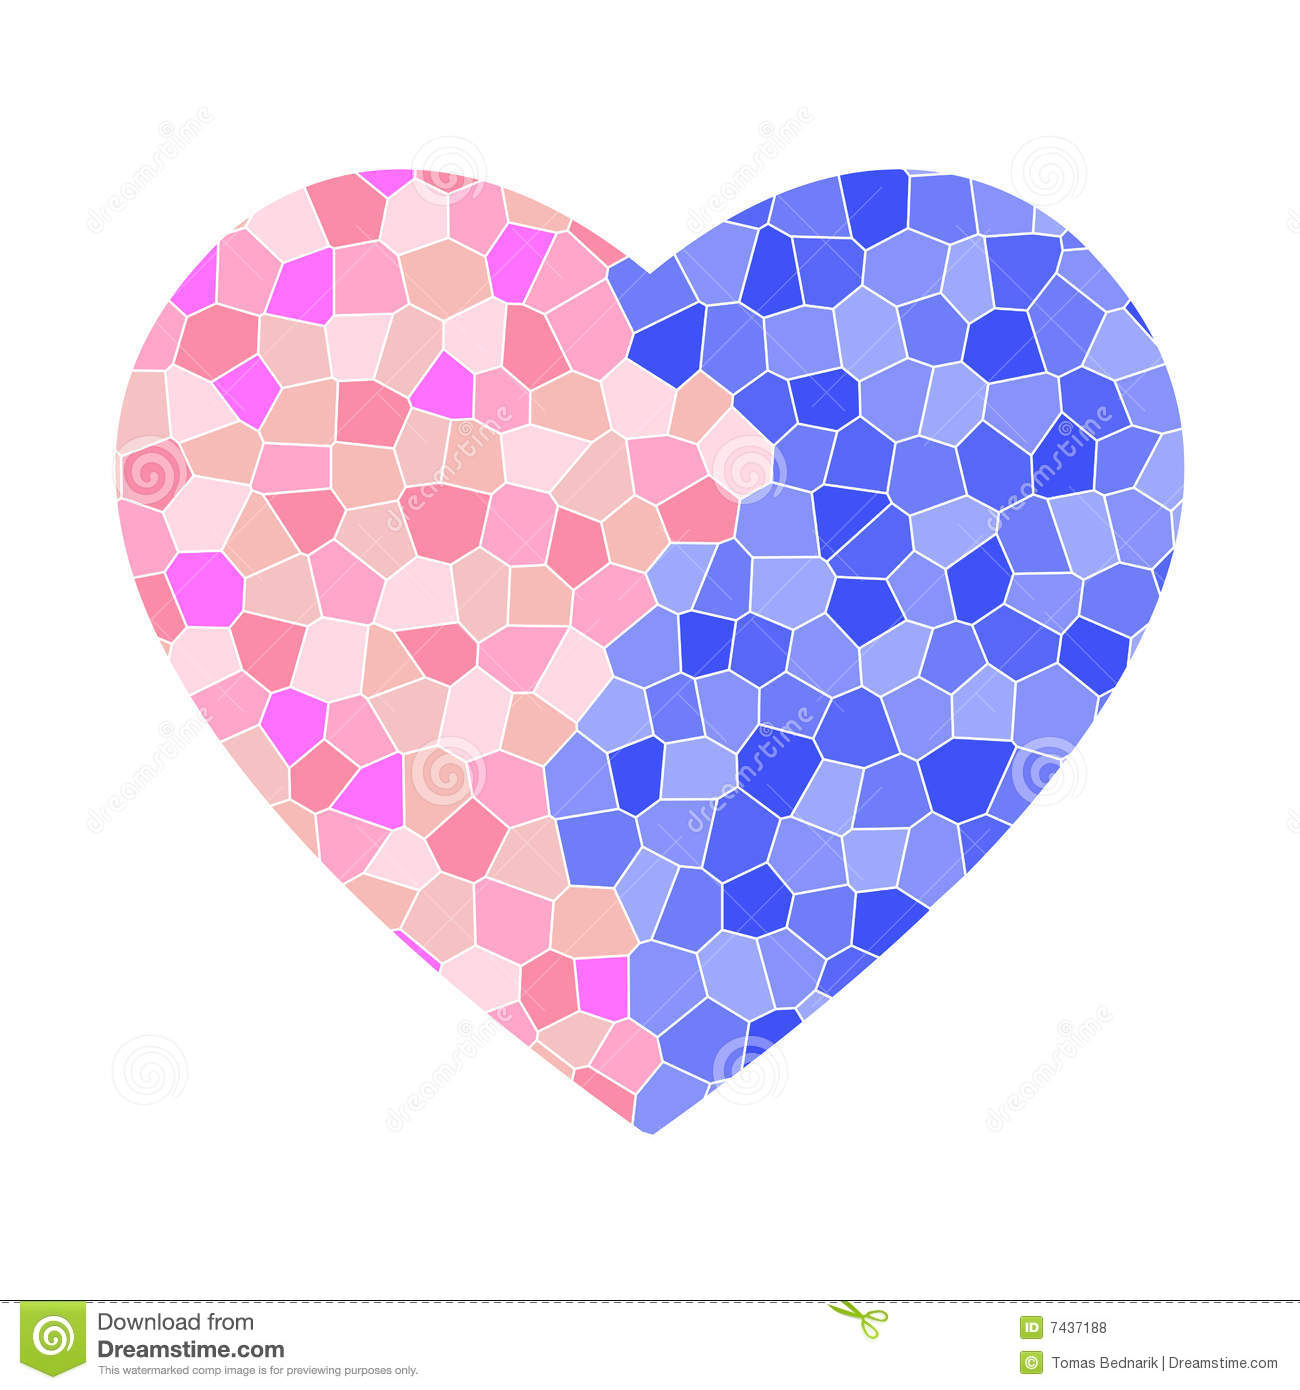 Broken Mosaic Heart Royalty Free Stock Photos - Image: 7437188